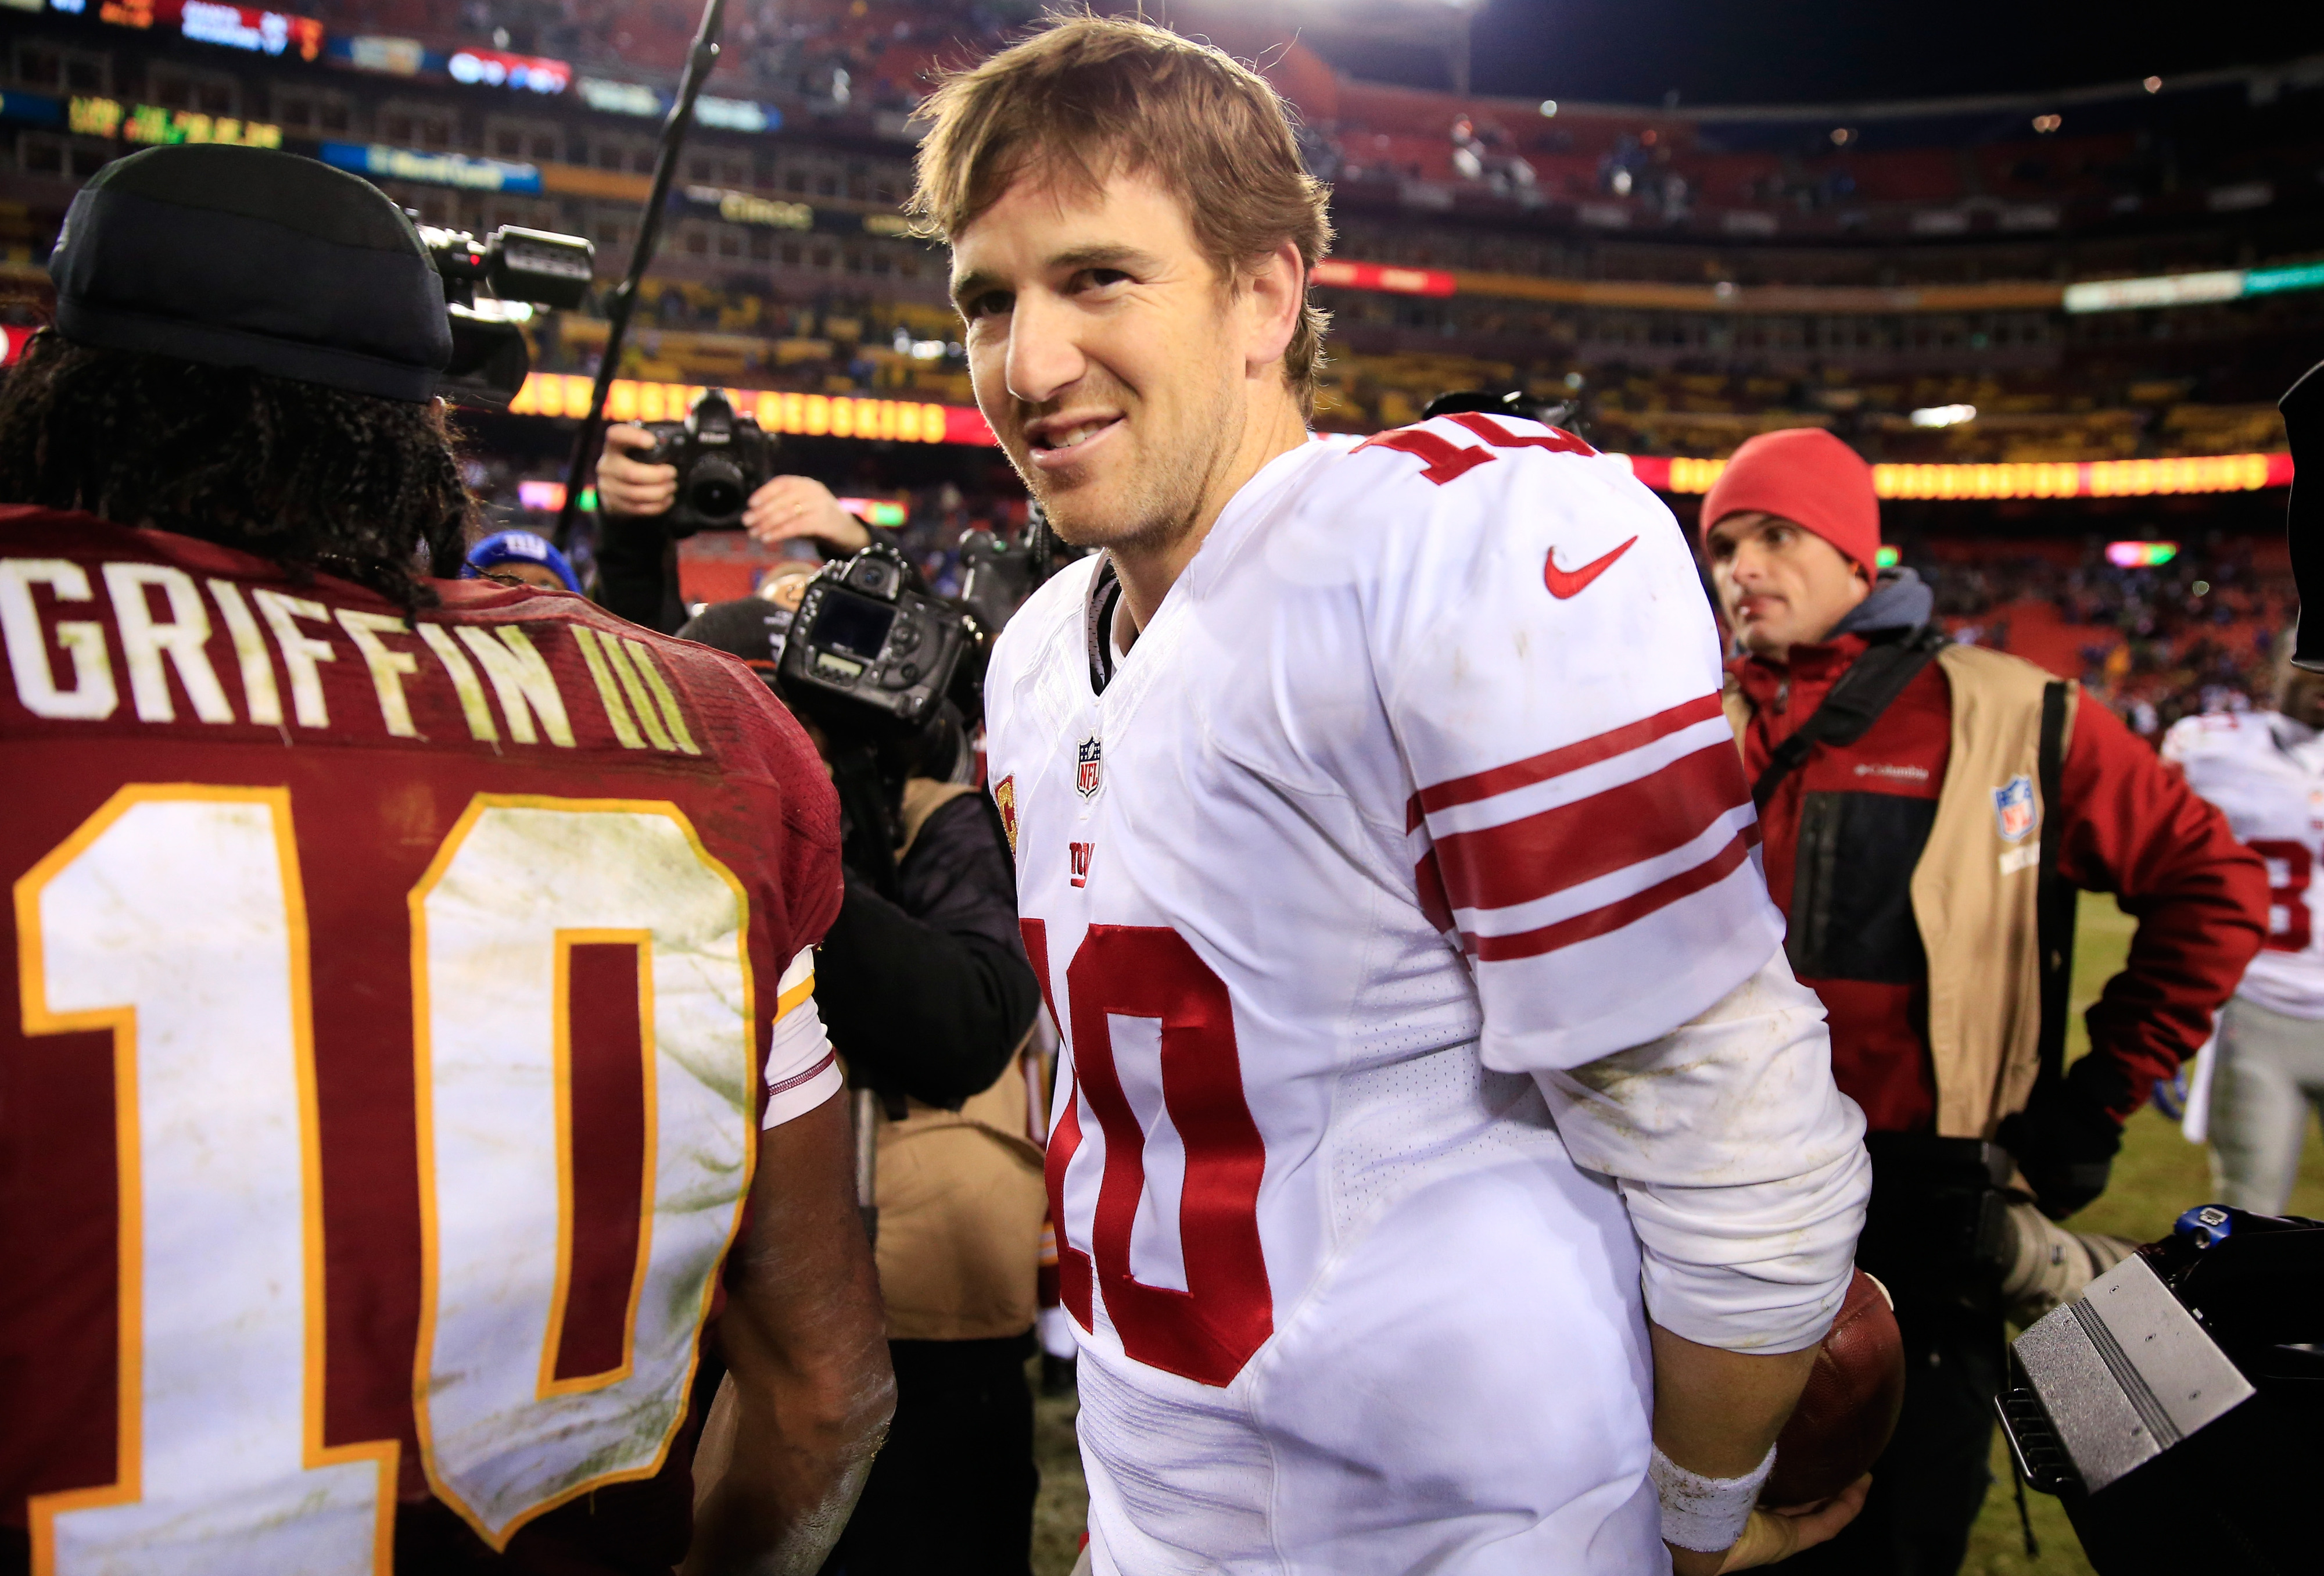 Will the Giants be smiling on their return trip from California?